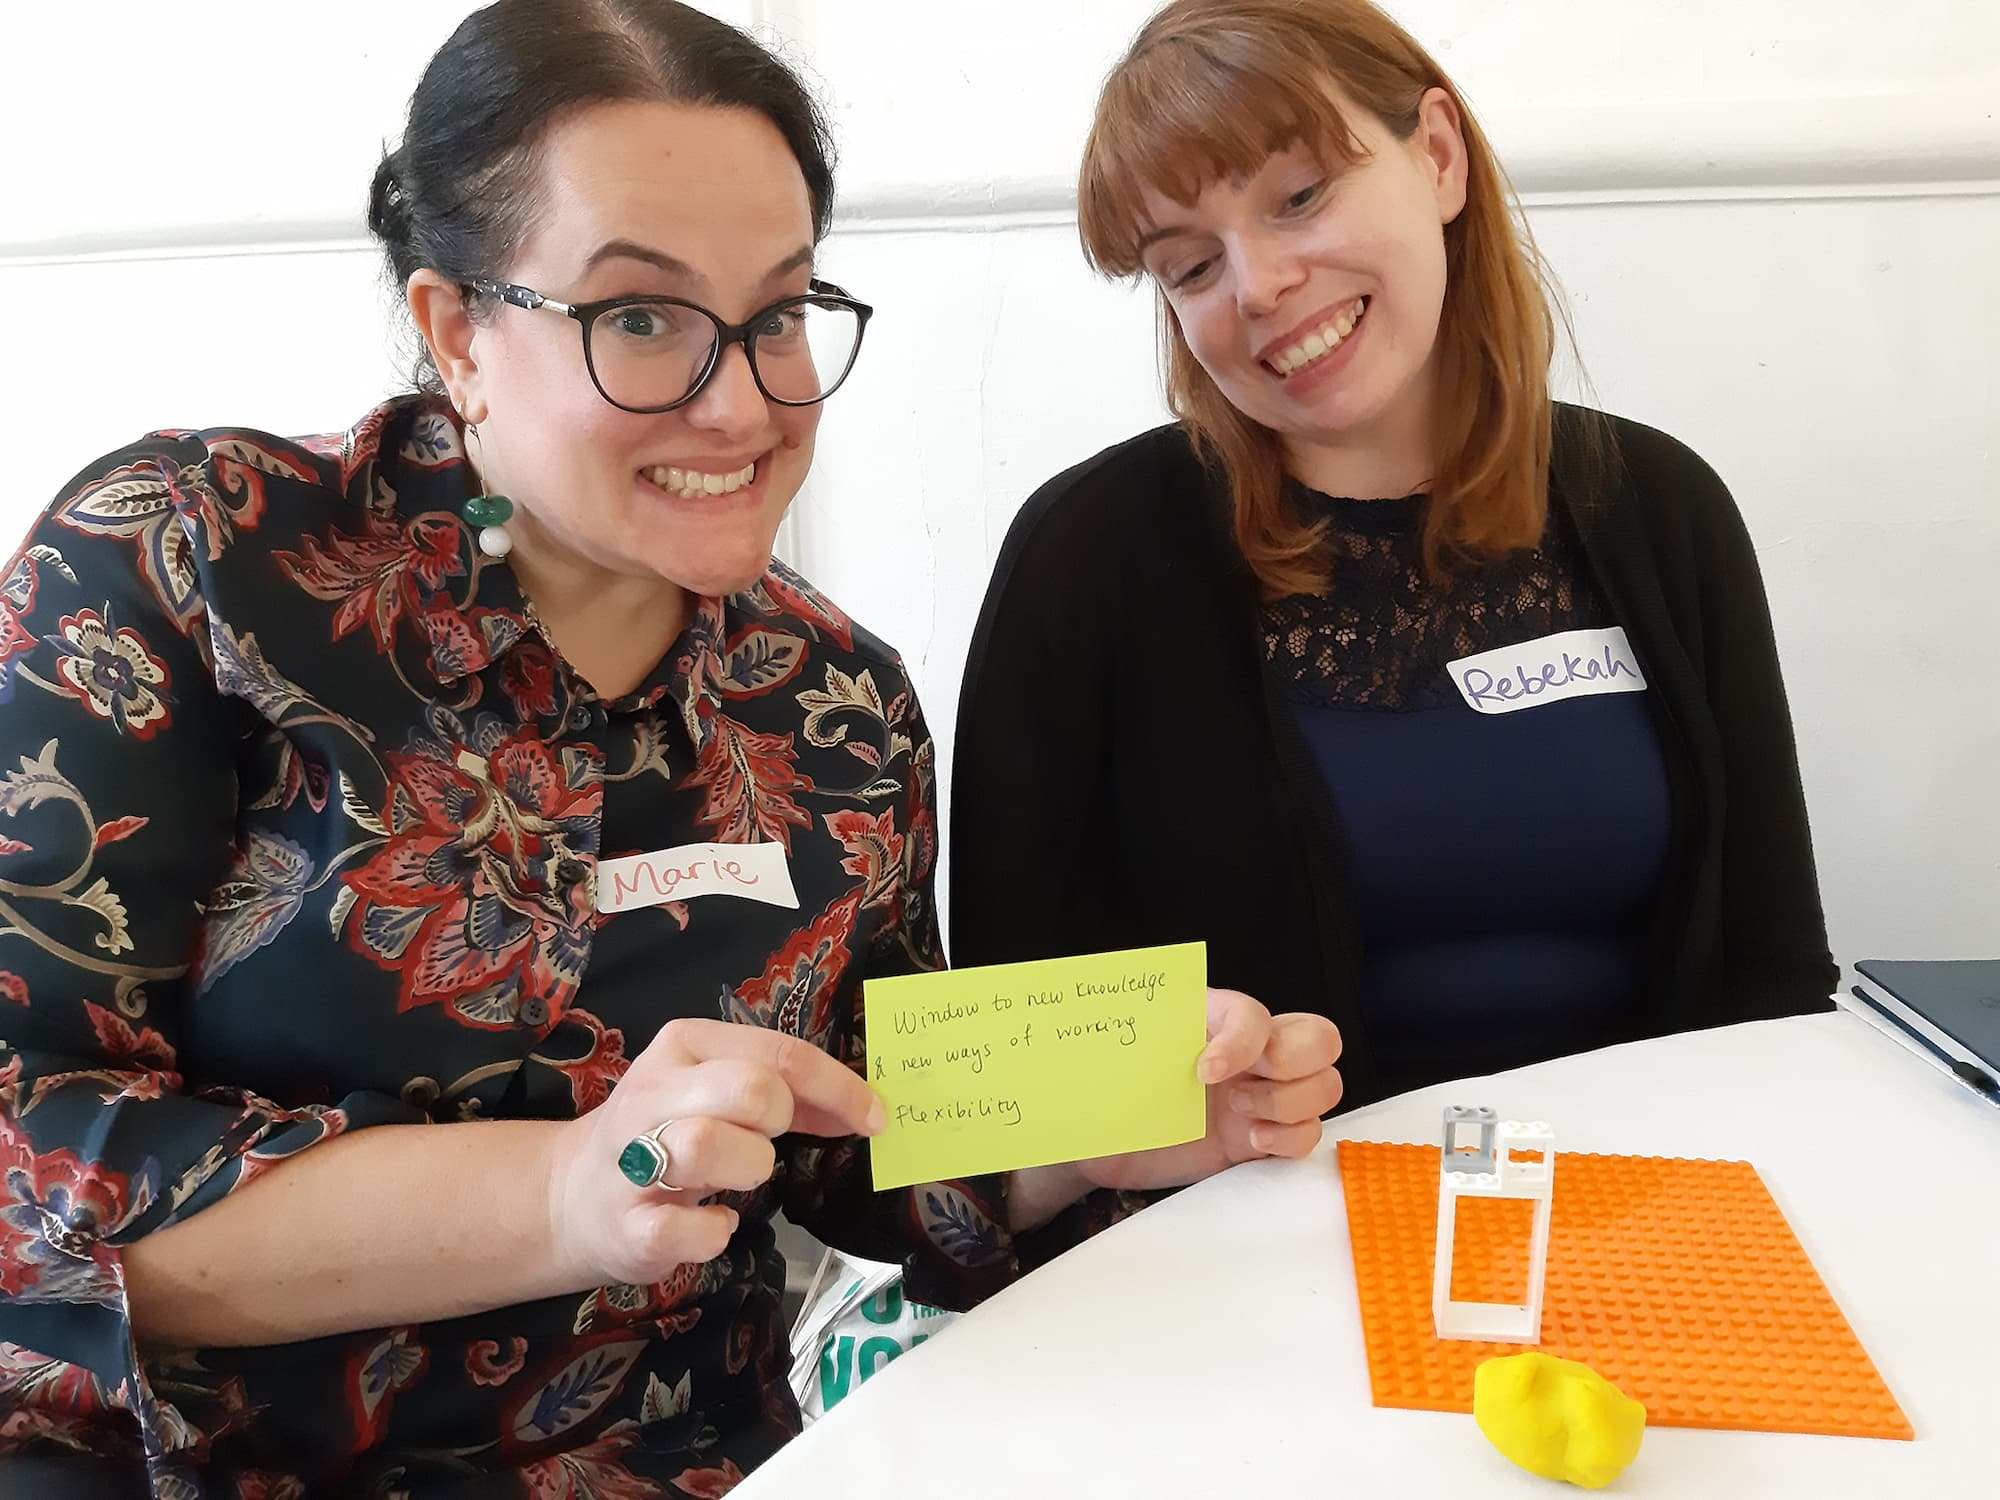 Two co-producers are sat next to each other with a colourful Lego model that they have made in front of them, one of them is holding up a post-it note that says 'Flexibility' on it.